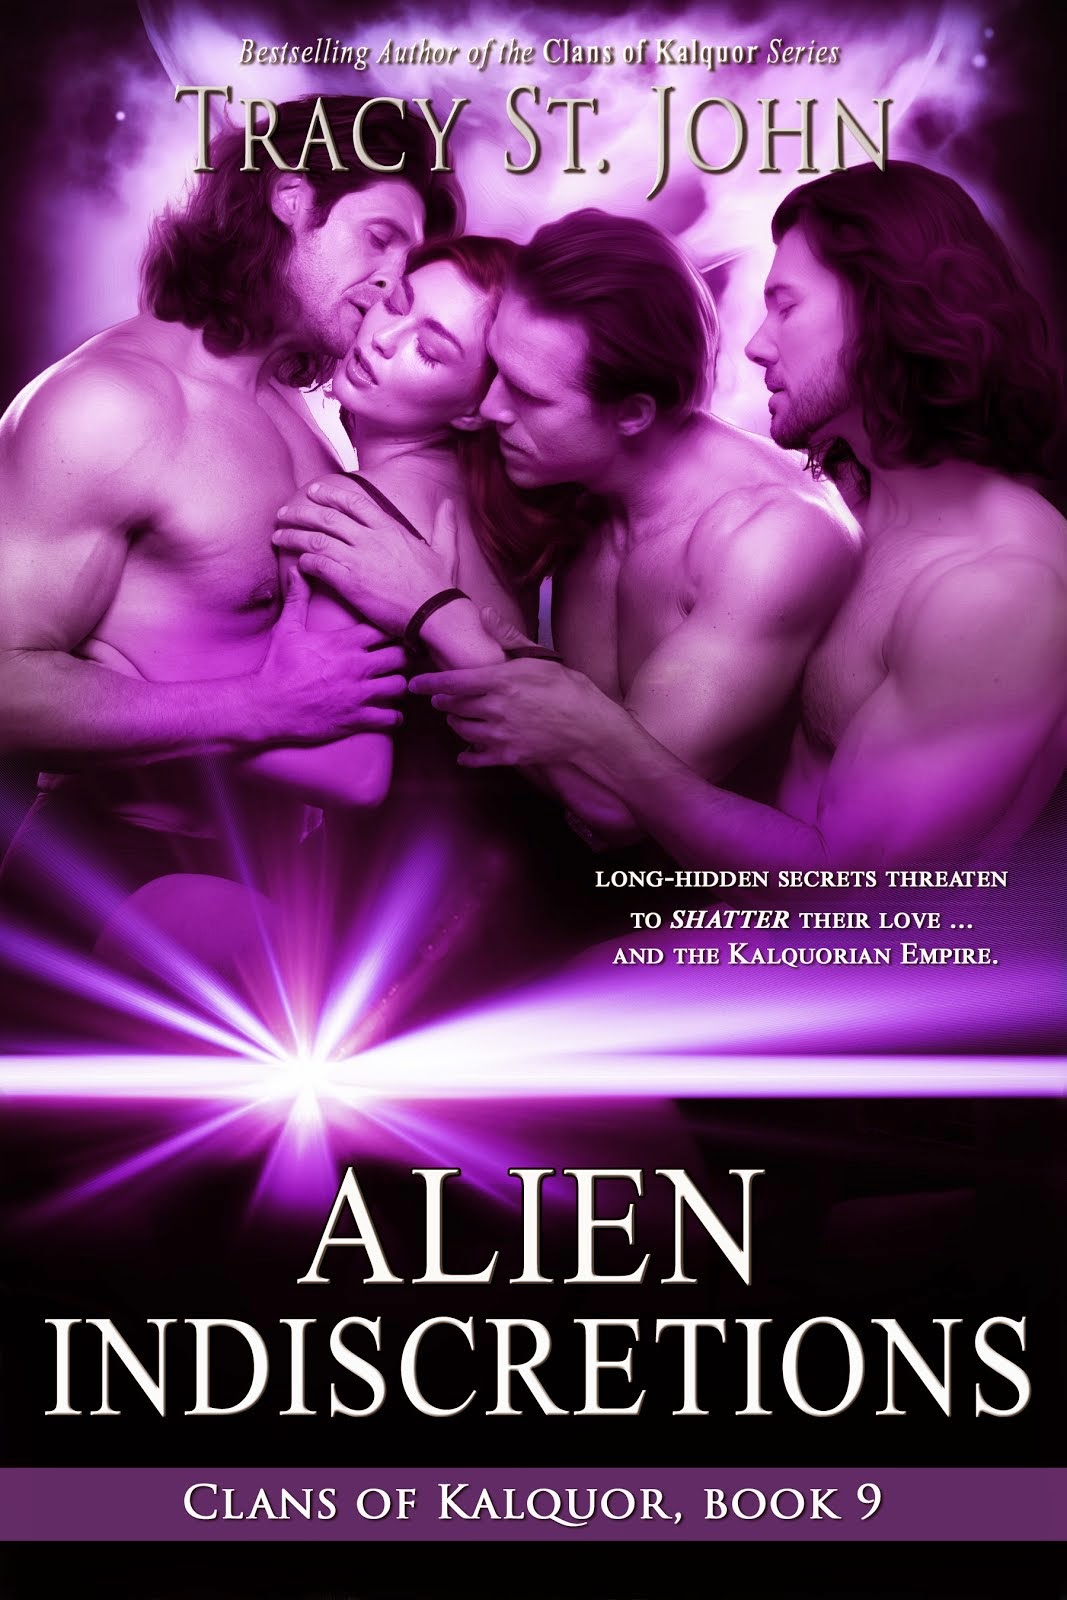 Clans of Kalquor 9: Alien Indiscretions